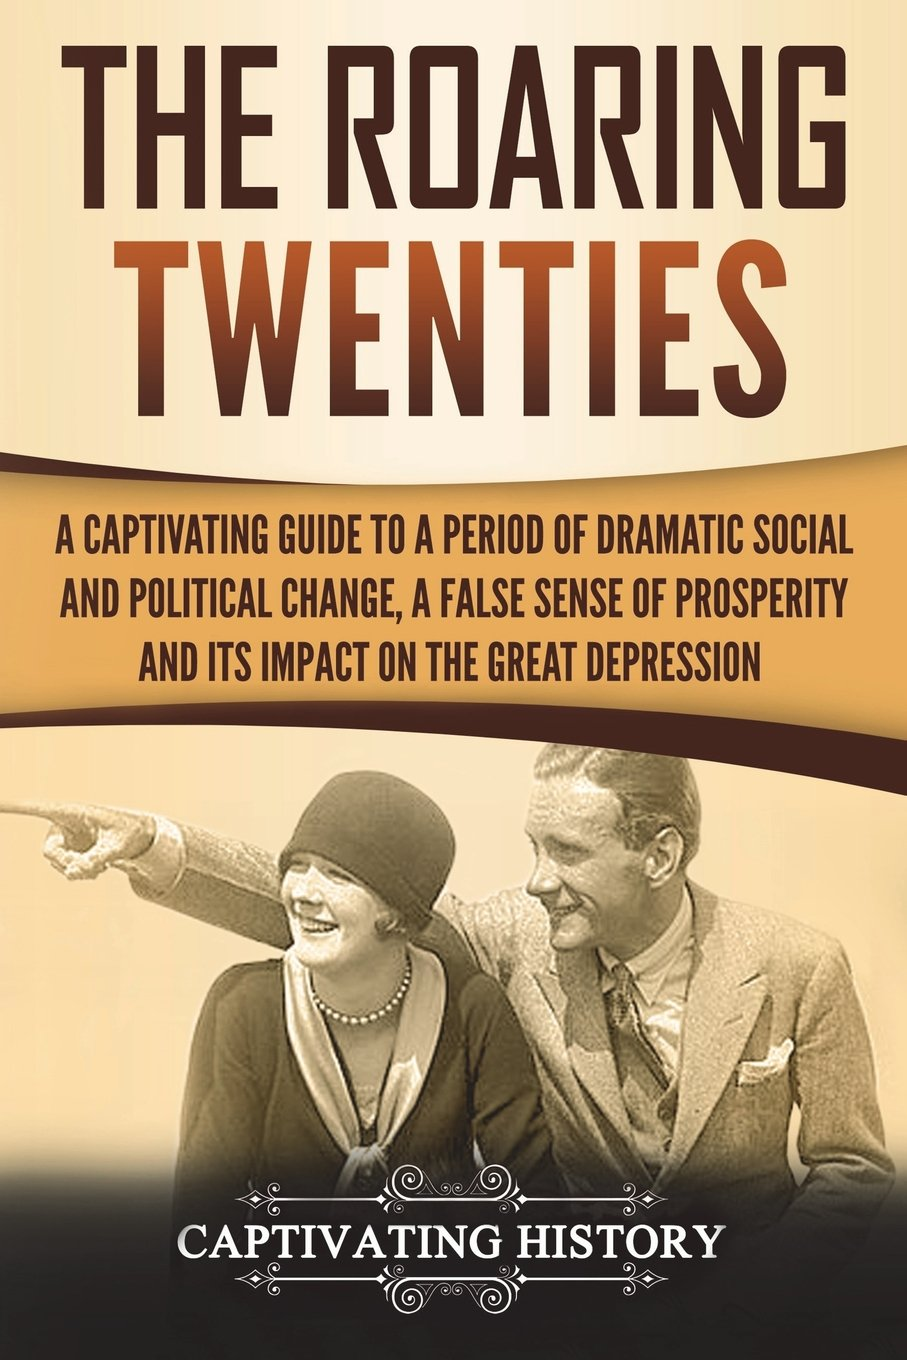 Download The Roaring Twenties: A Captivating Guide to a Period of Dramatic Social and Political Change, a False Sense of Prosperity, and Its Impact on the Great Depression PDF